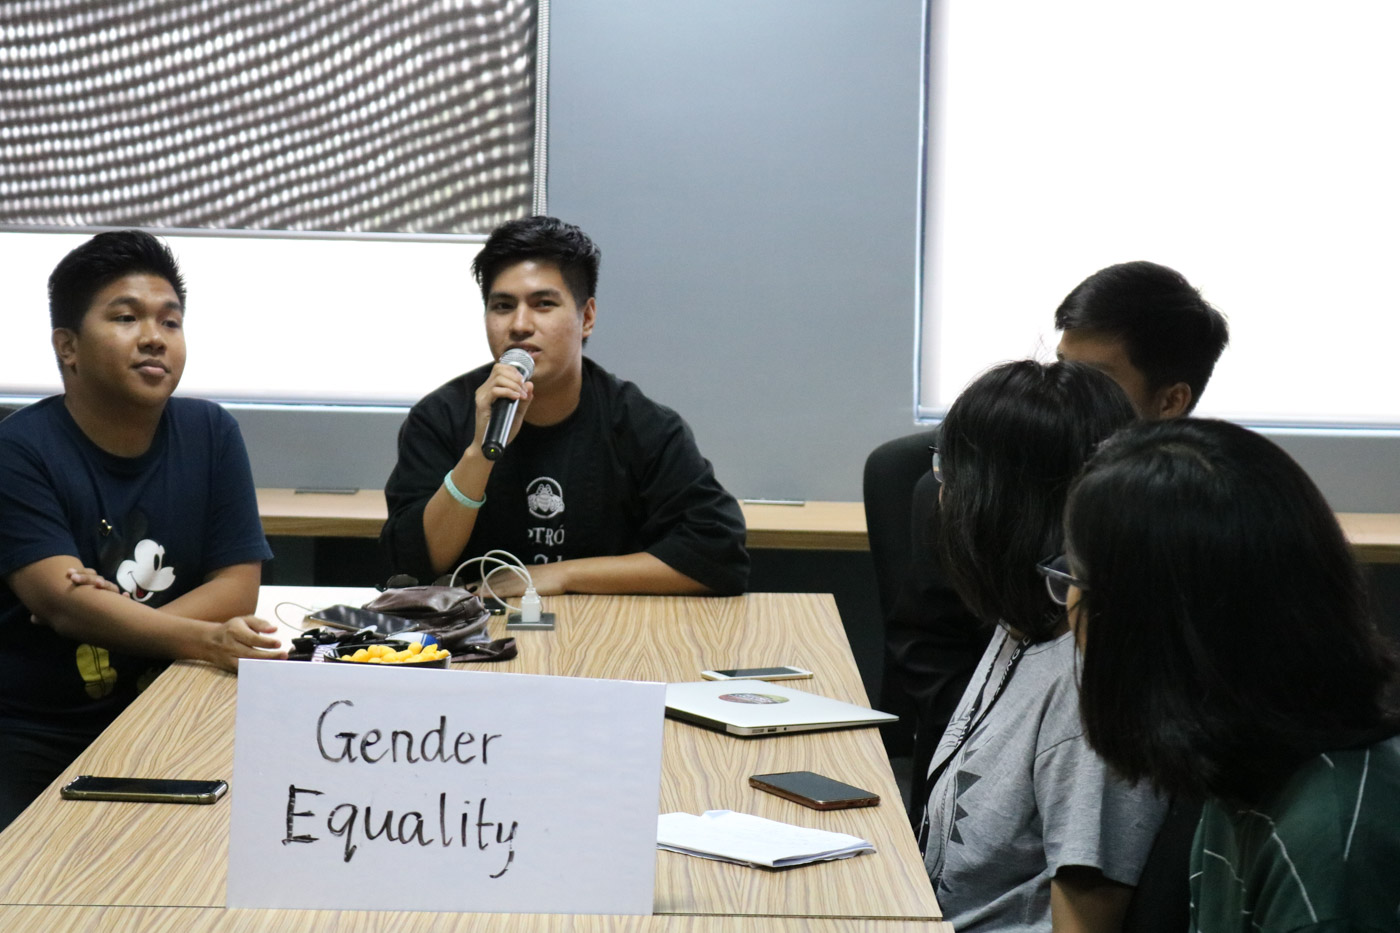 GENDER EQUALITY. Youth pushing for gender equality state their concerns and expectations ahead of President Rodrigo Duterte's 4th State of the Nation Address. Photo by Arlan Jay Jondonero/Rappler